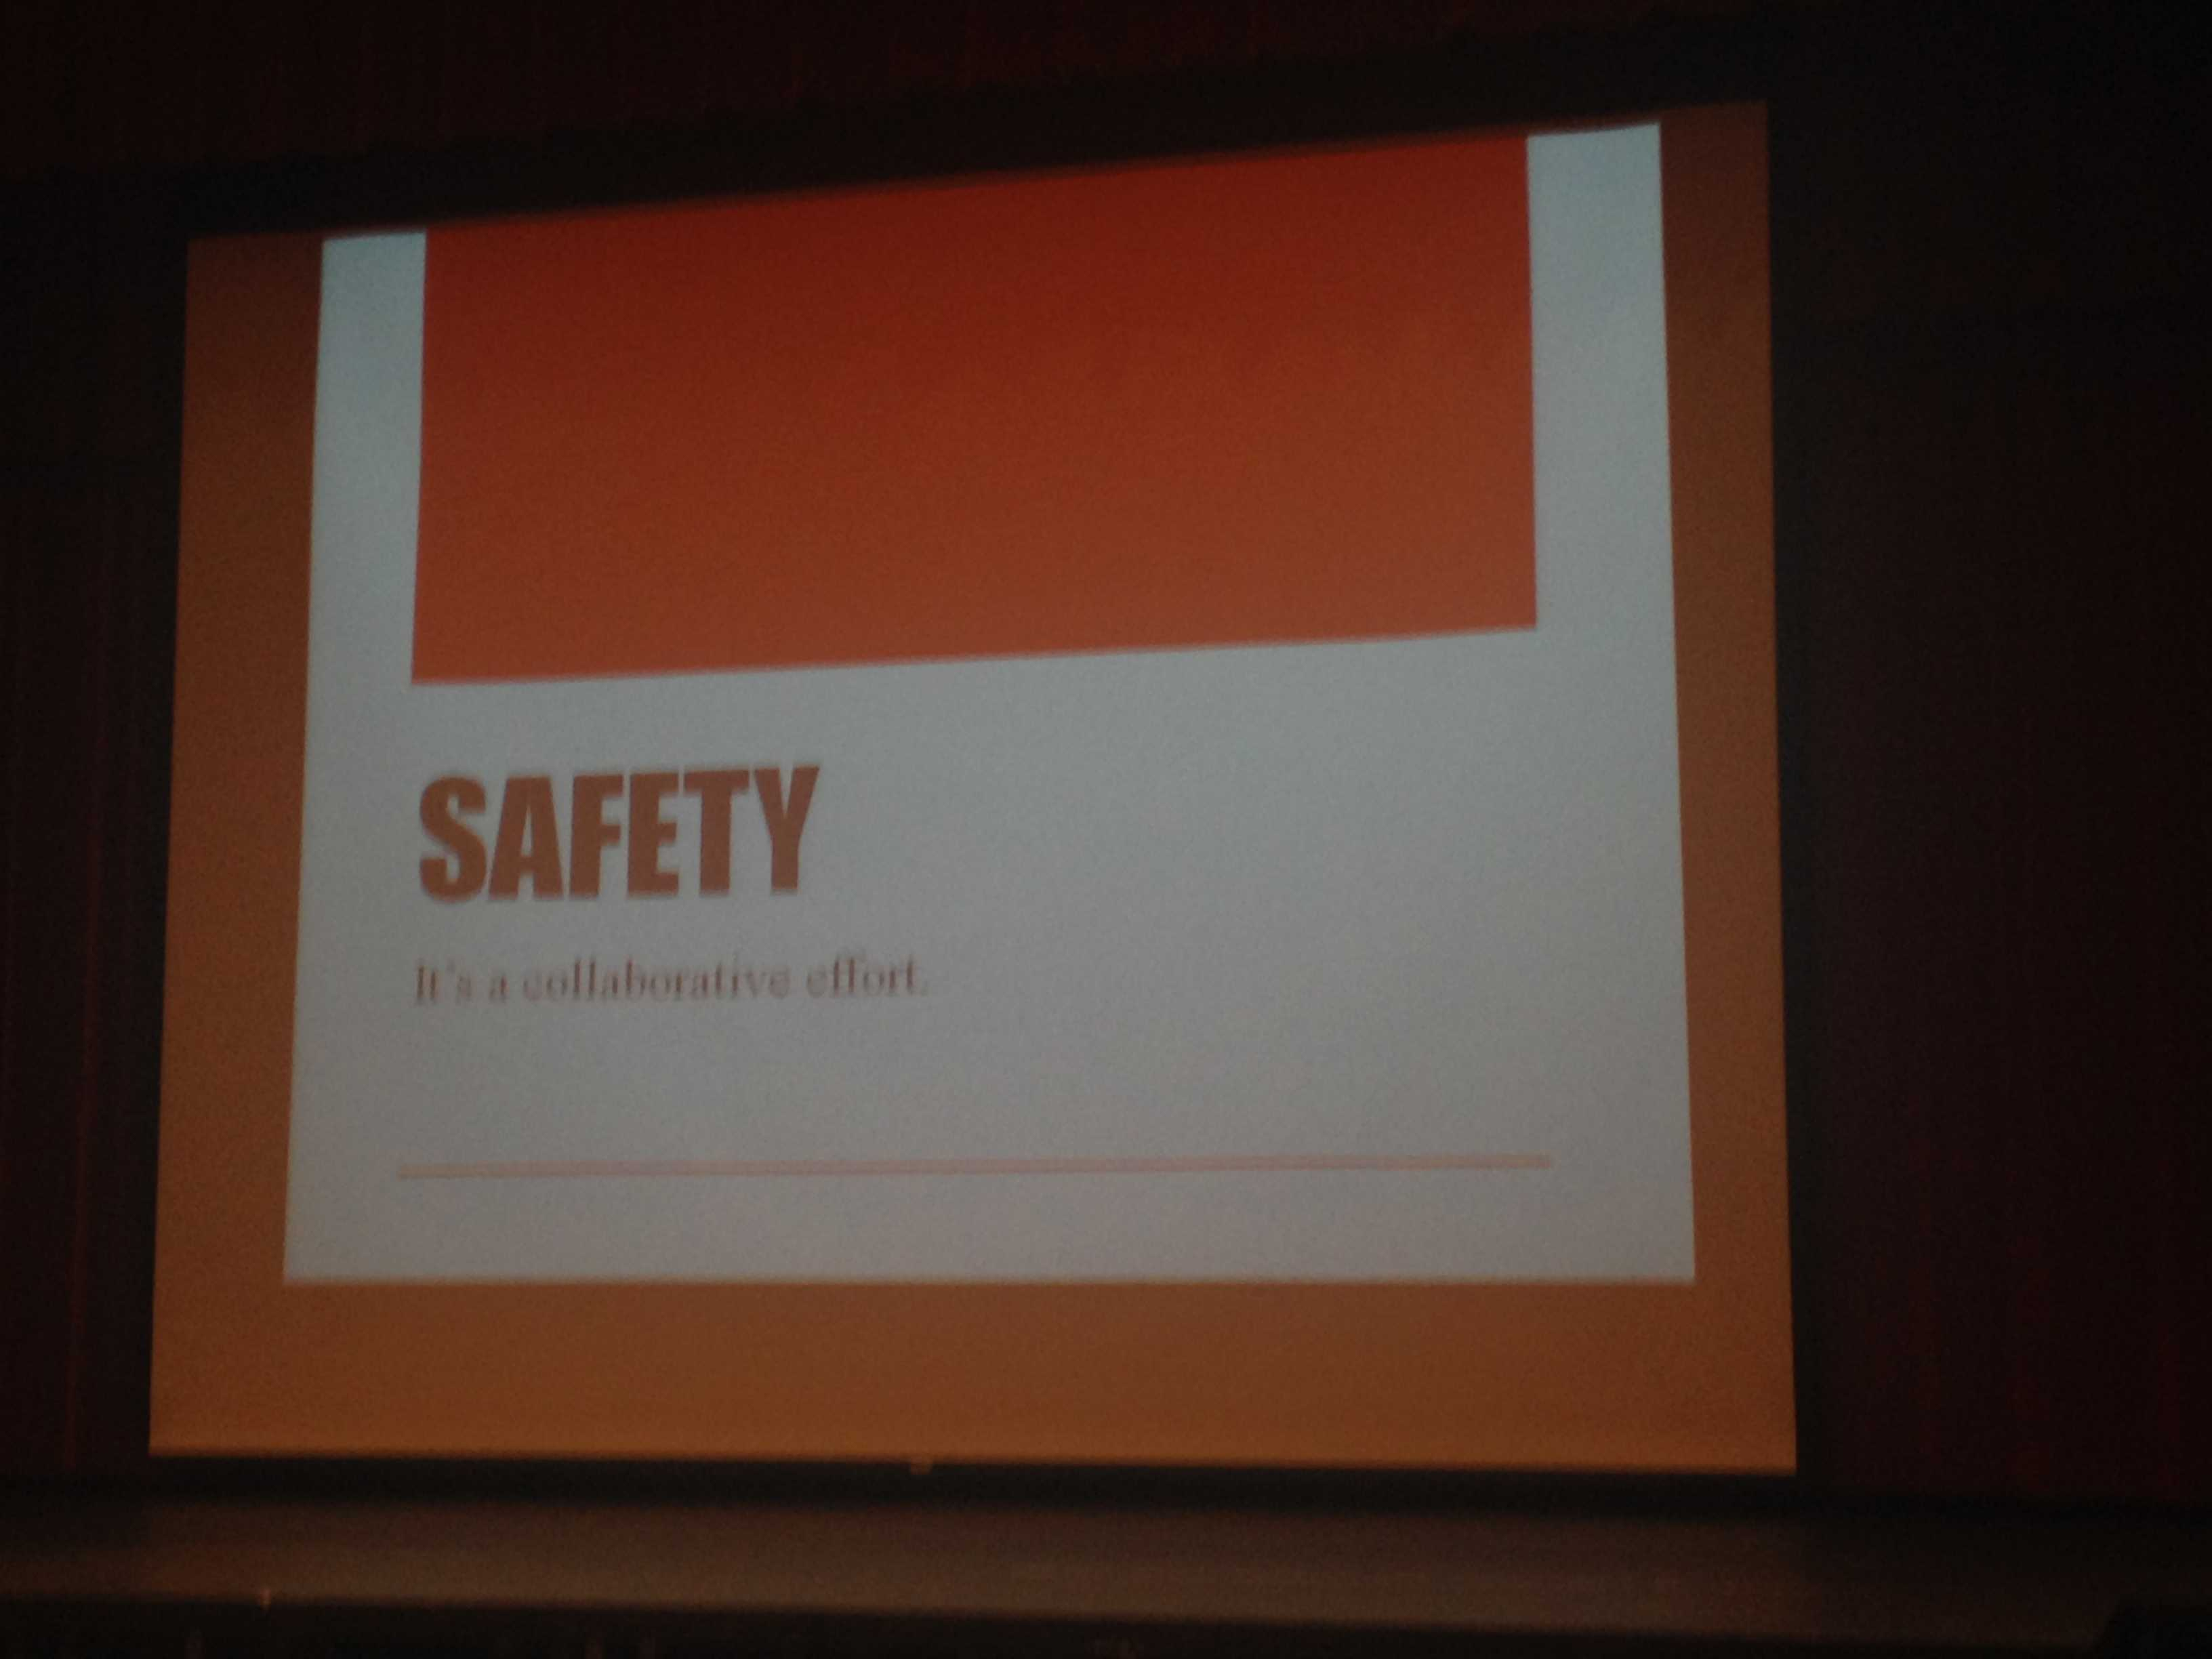 This safety PowerPoint played behind Principal James Reed during the assembly.